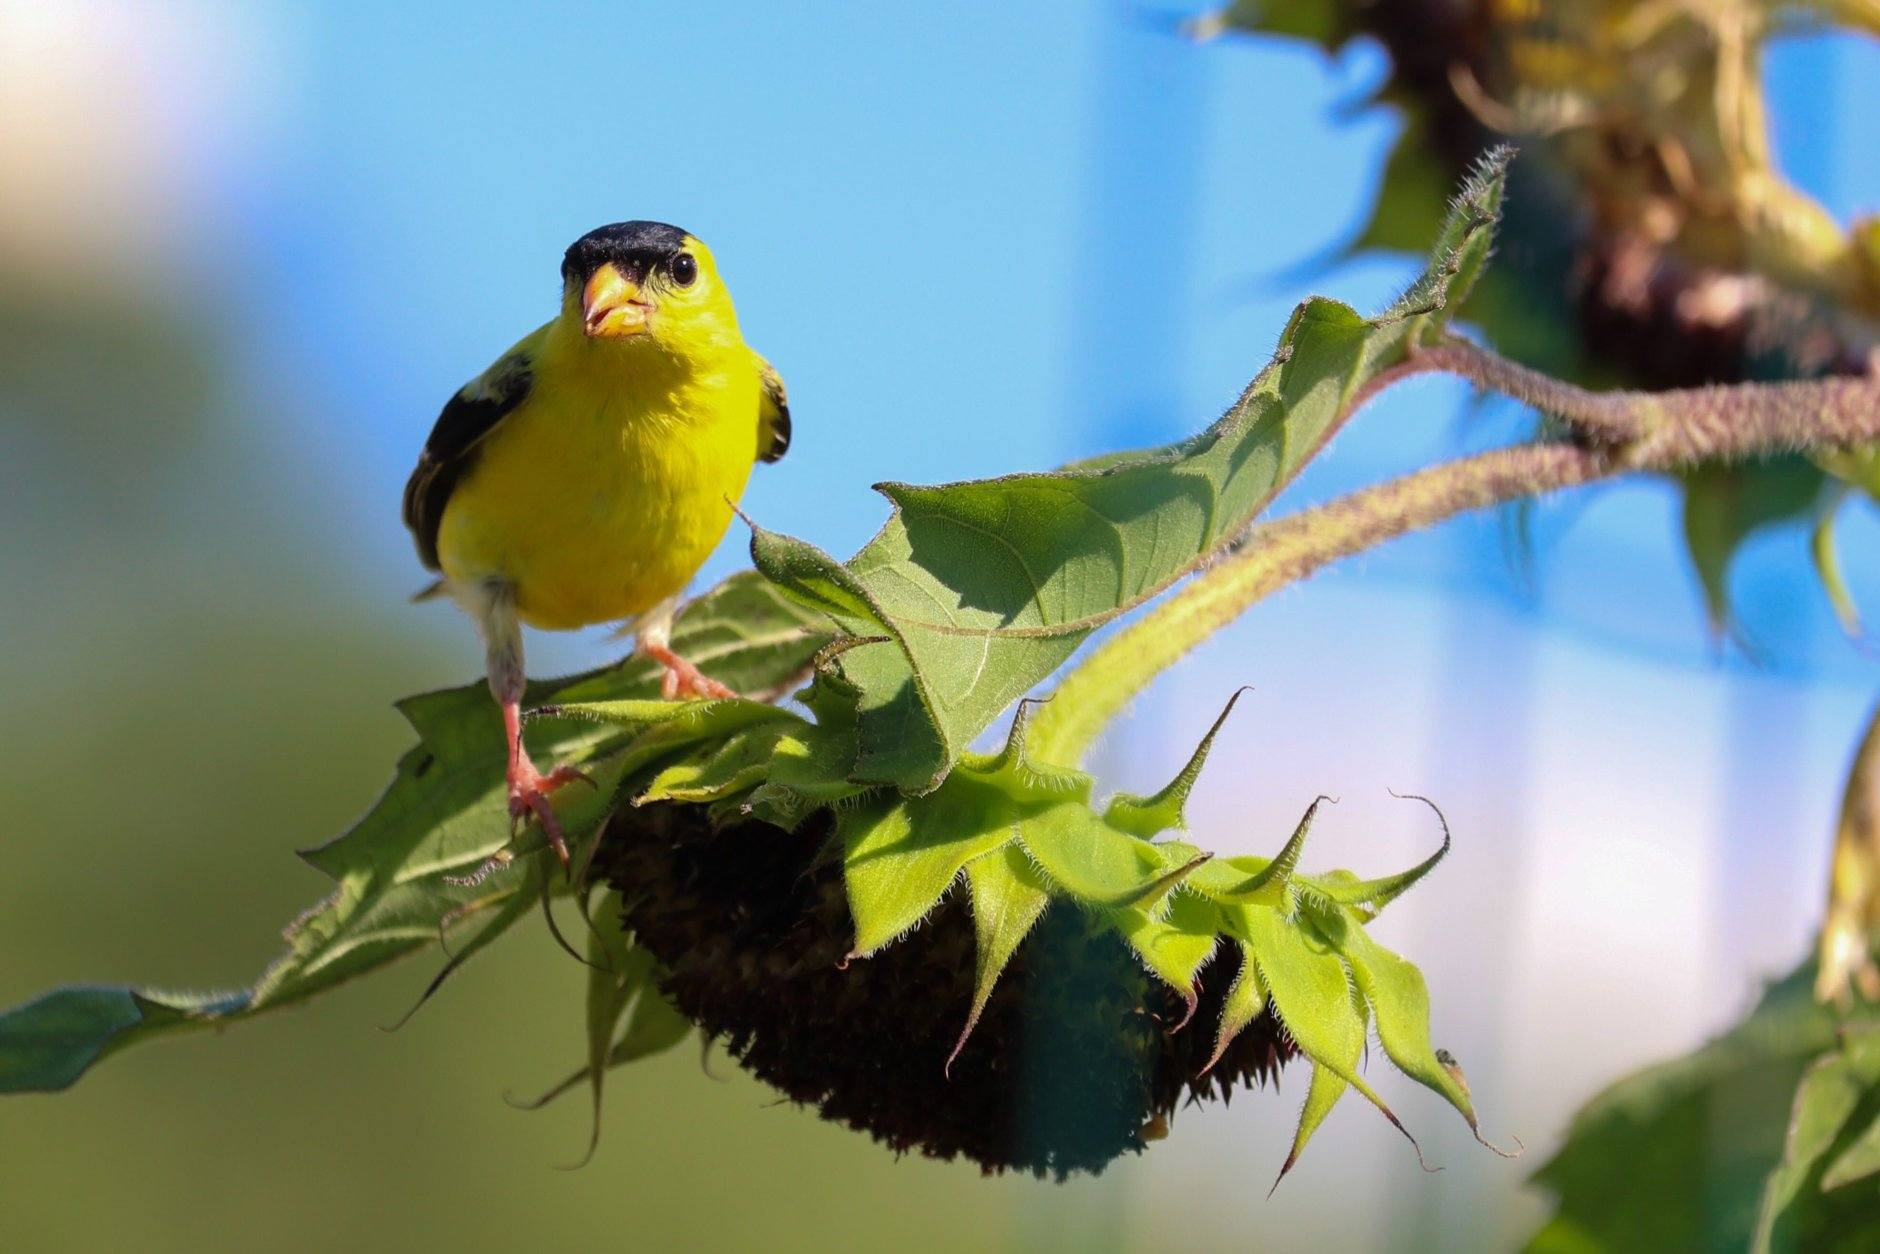 Native plants can provide food for birds like this male goldfinch. (WTOP/Kate Ryan)